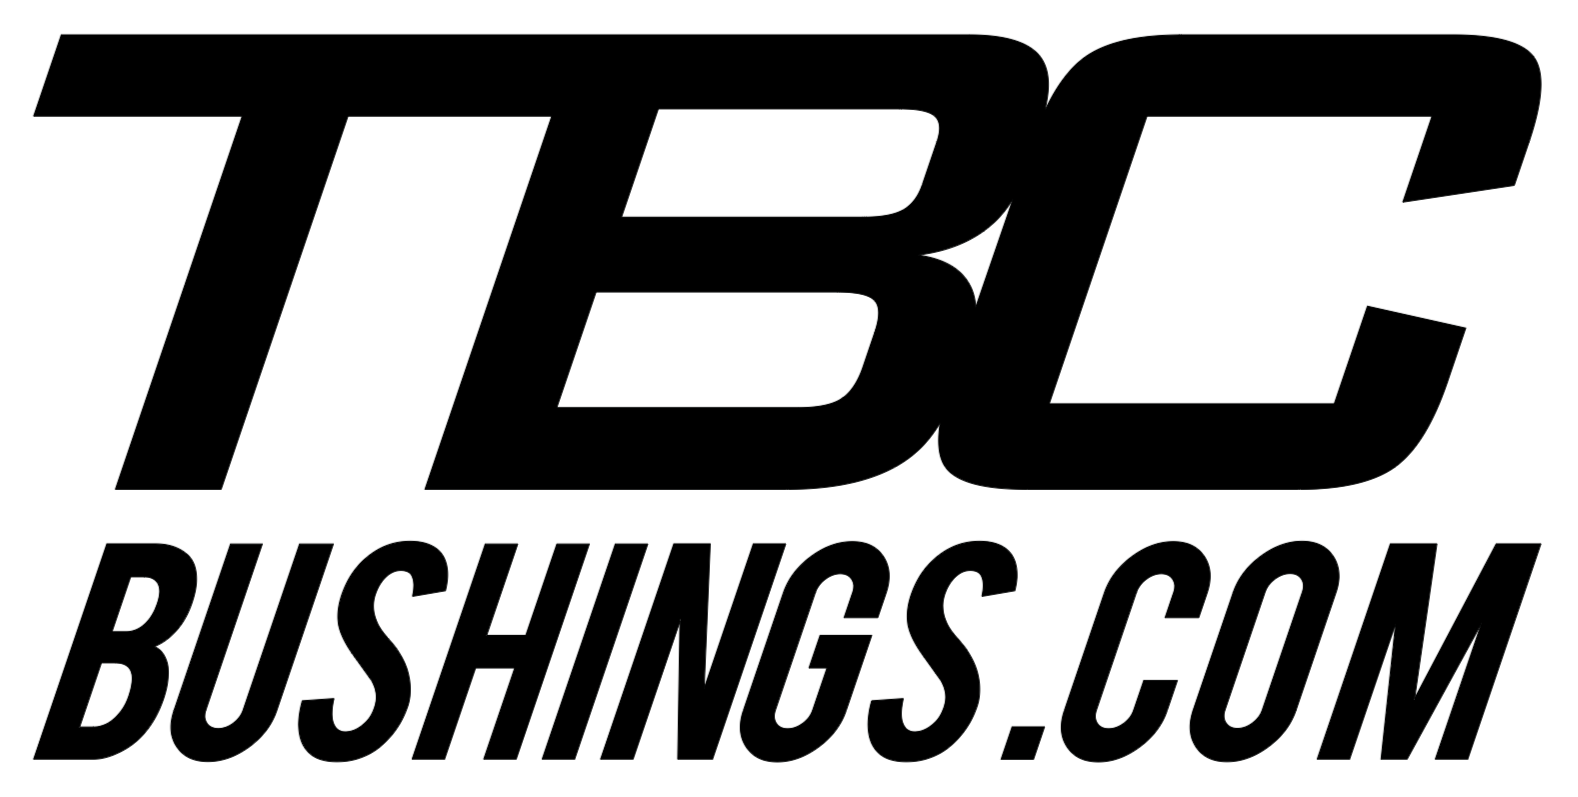 TBC Bushings